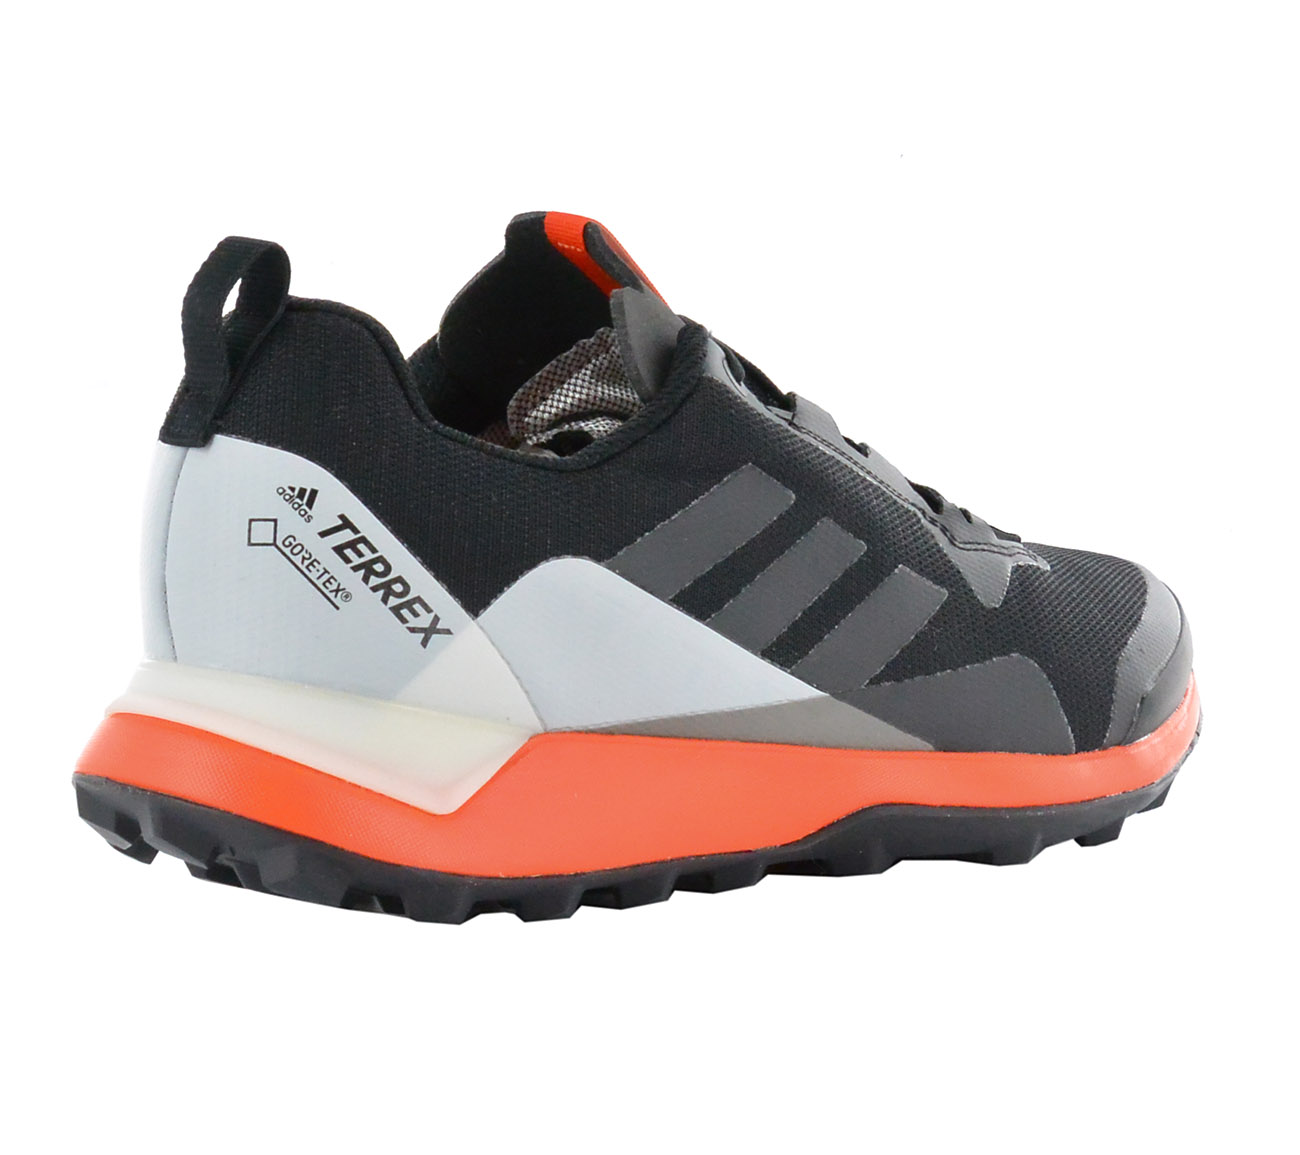 3b184e33819625 Adidas Terrex Cmtk GTX Gore-Tex Shoes Black Men s Hiking Shoes Trail ...